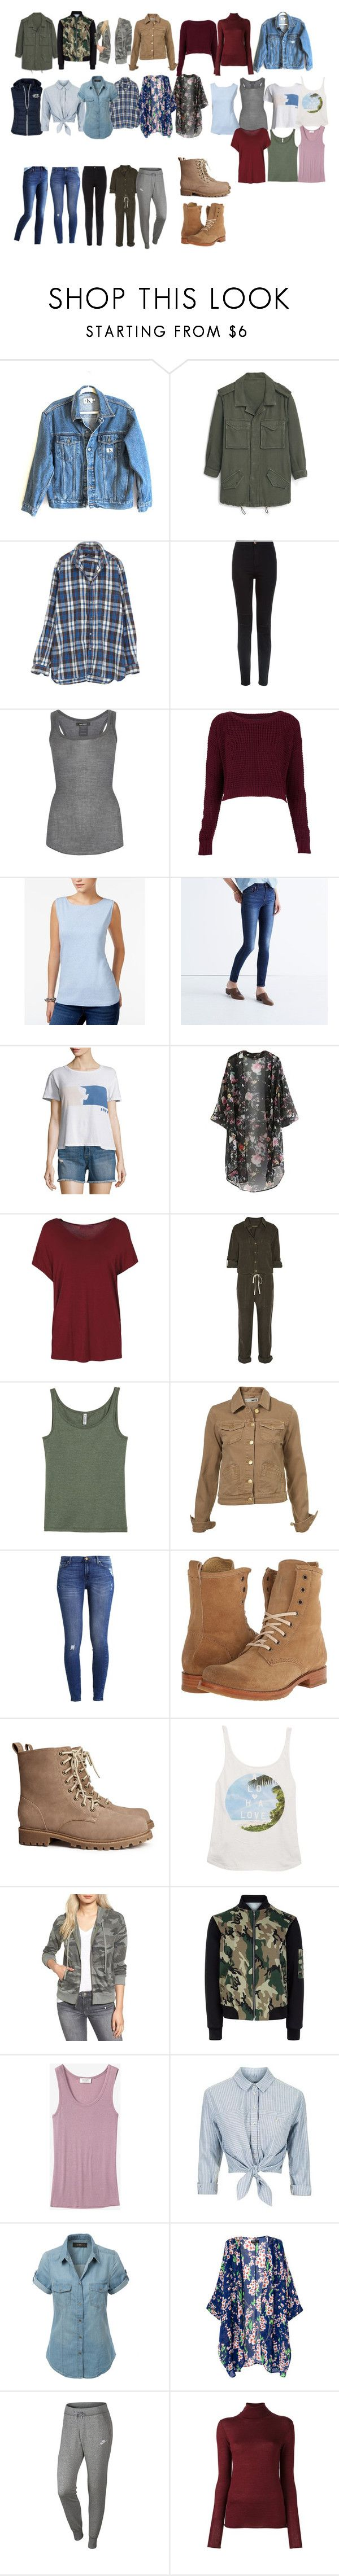 """""""Alicia Clark season 2 essentials - ftwd / fear the walking dead"""" by shadyannon ❤ liked on Polyvore featuring Calvin Klein Jeans, MANGO, New Look, Isabel Marant, Topshop, Karen Scott, Madewell, Current/Elliott, Enza Costa and H&M"""